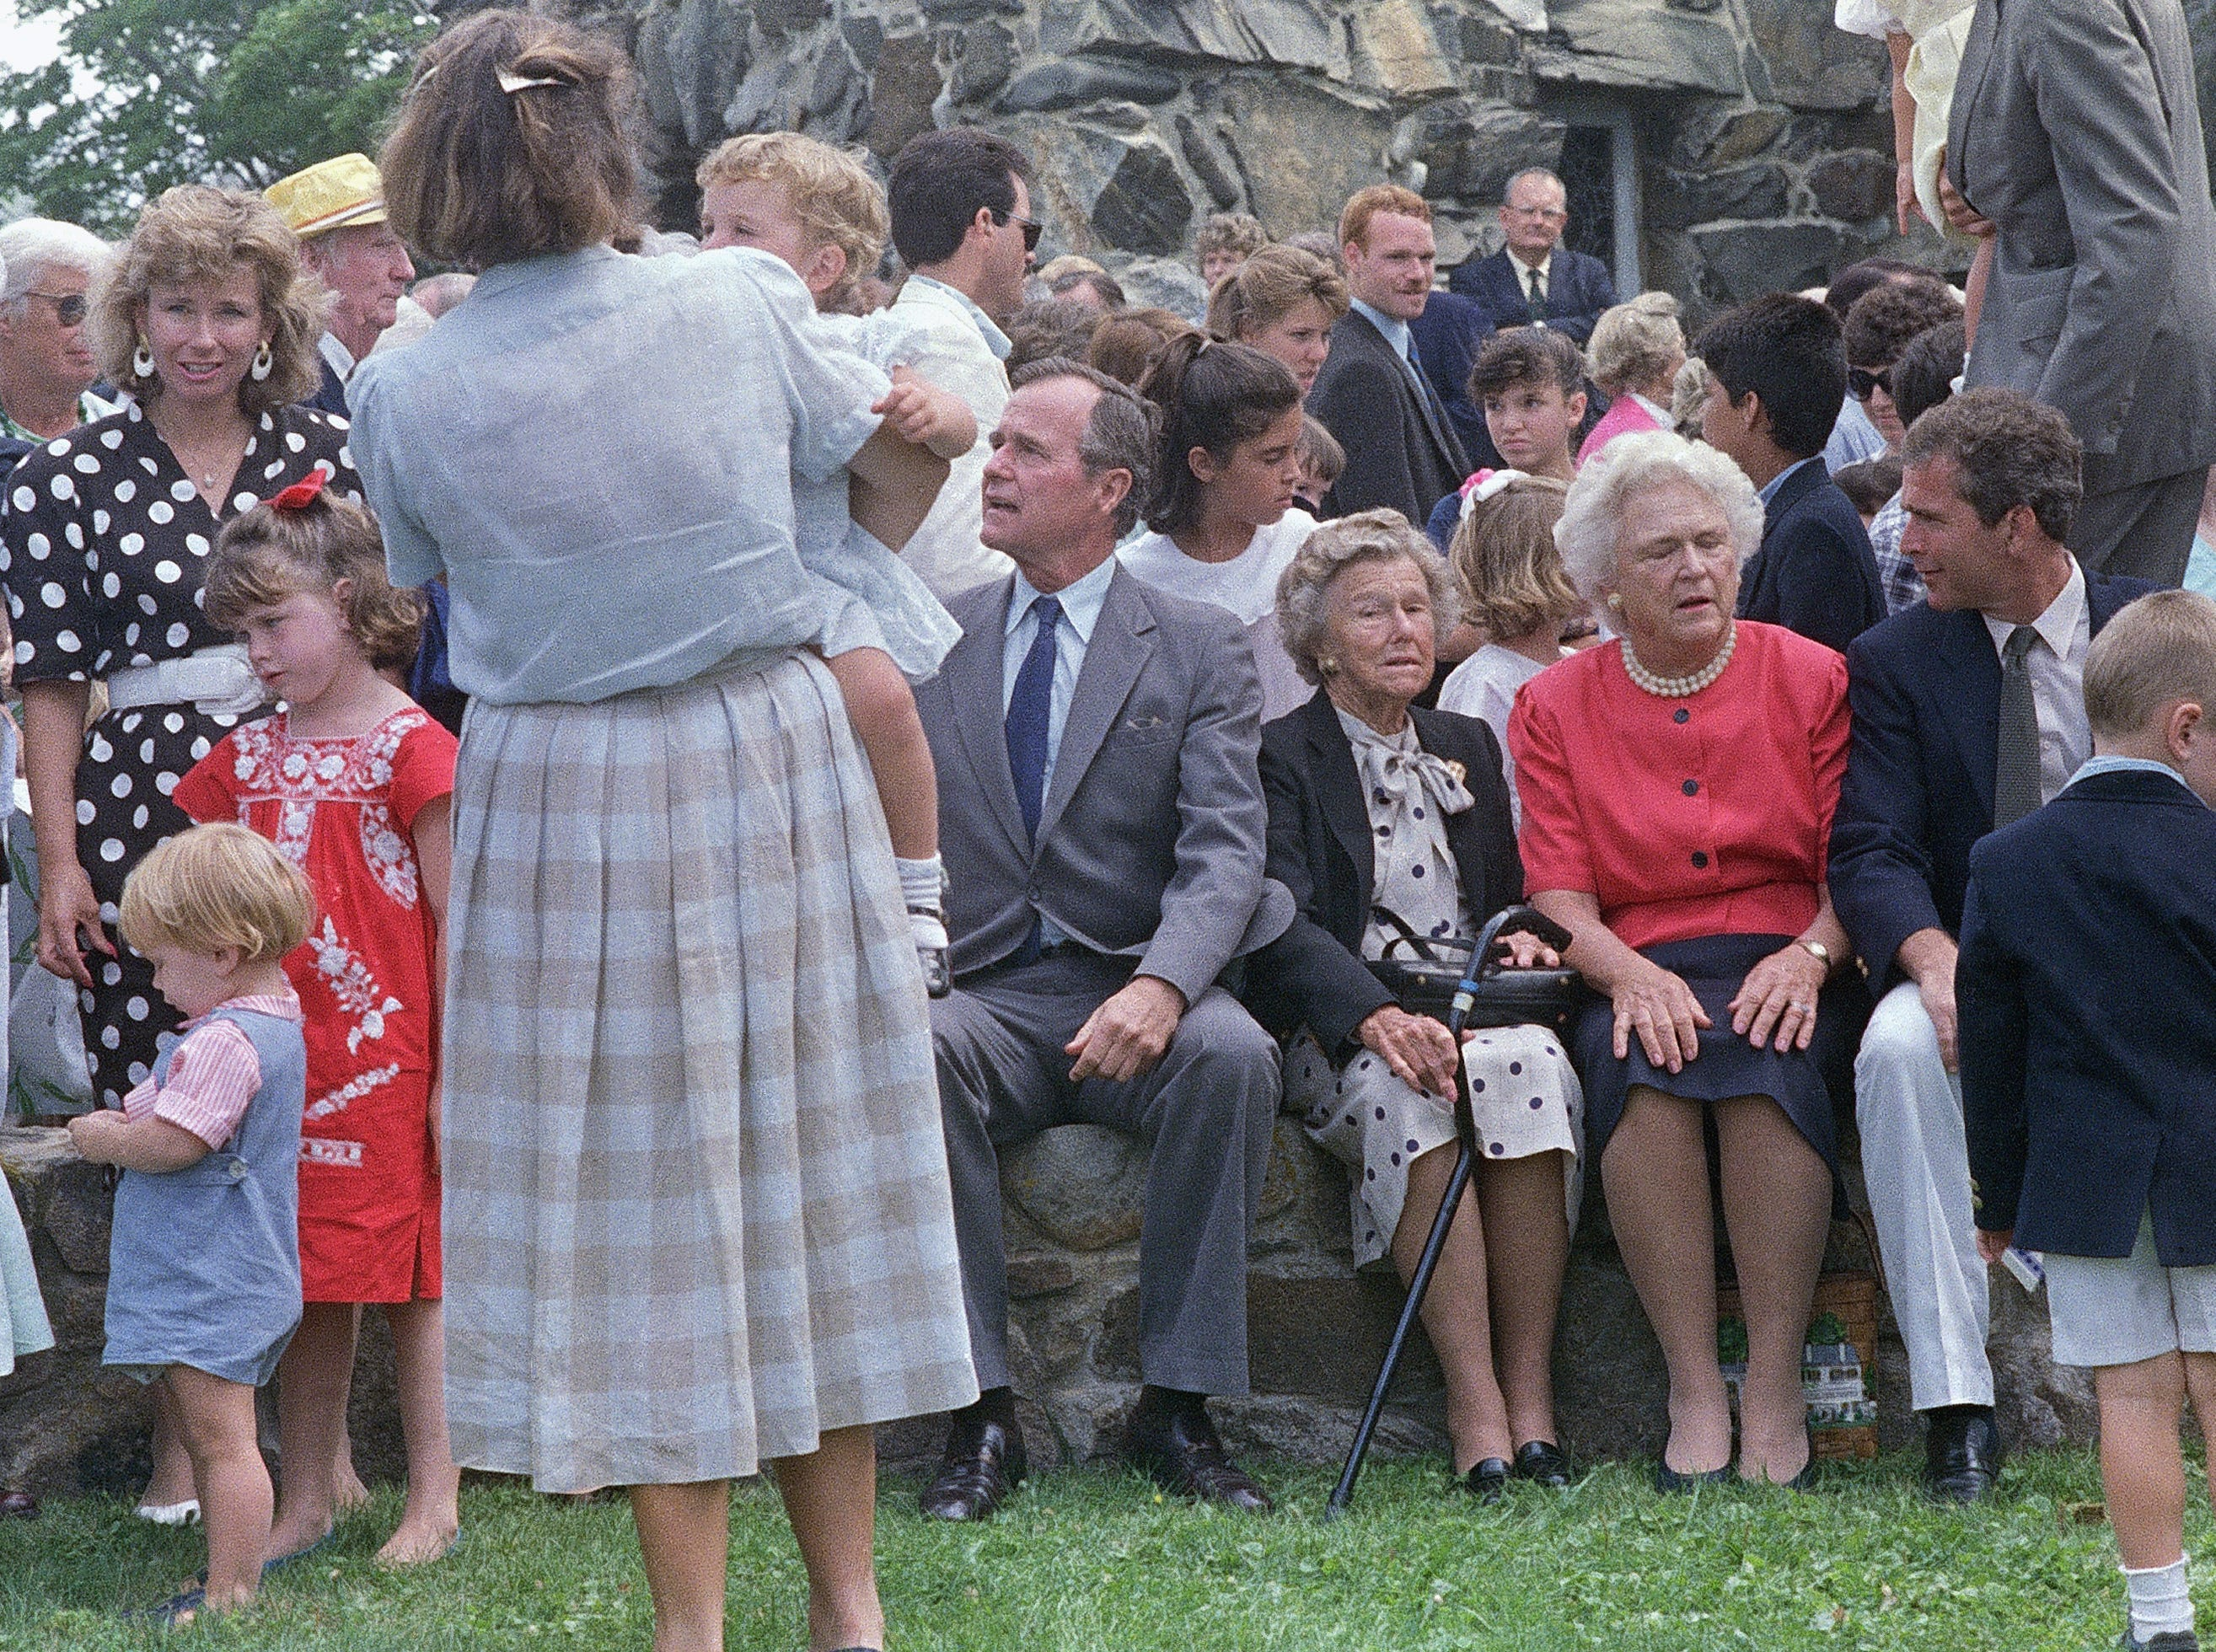 Vice President George H. W. Bush, left, poses with his family outside St. Anns Church, Aug. 8, 1988, Kennebunkport, Me. Sitting next to Bush is his mother, Dorothy Bush, wife, Barbara Bush, second from right, and son George W. Bush. (AP Photo/Herb Swanson)